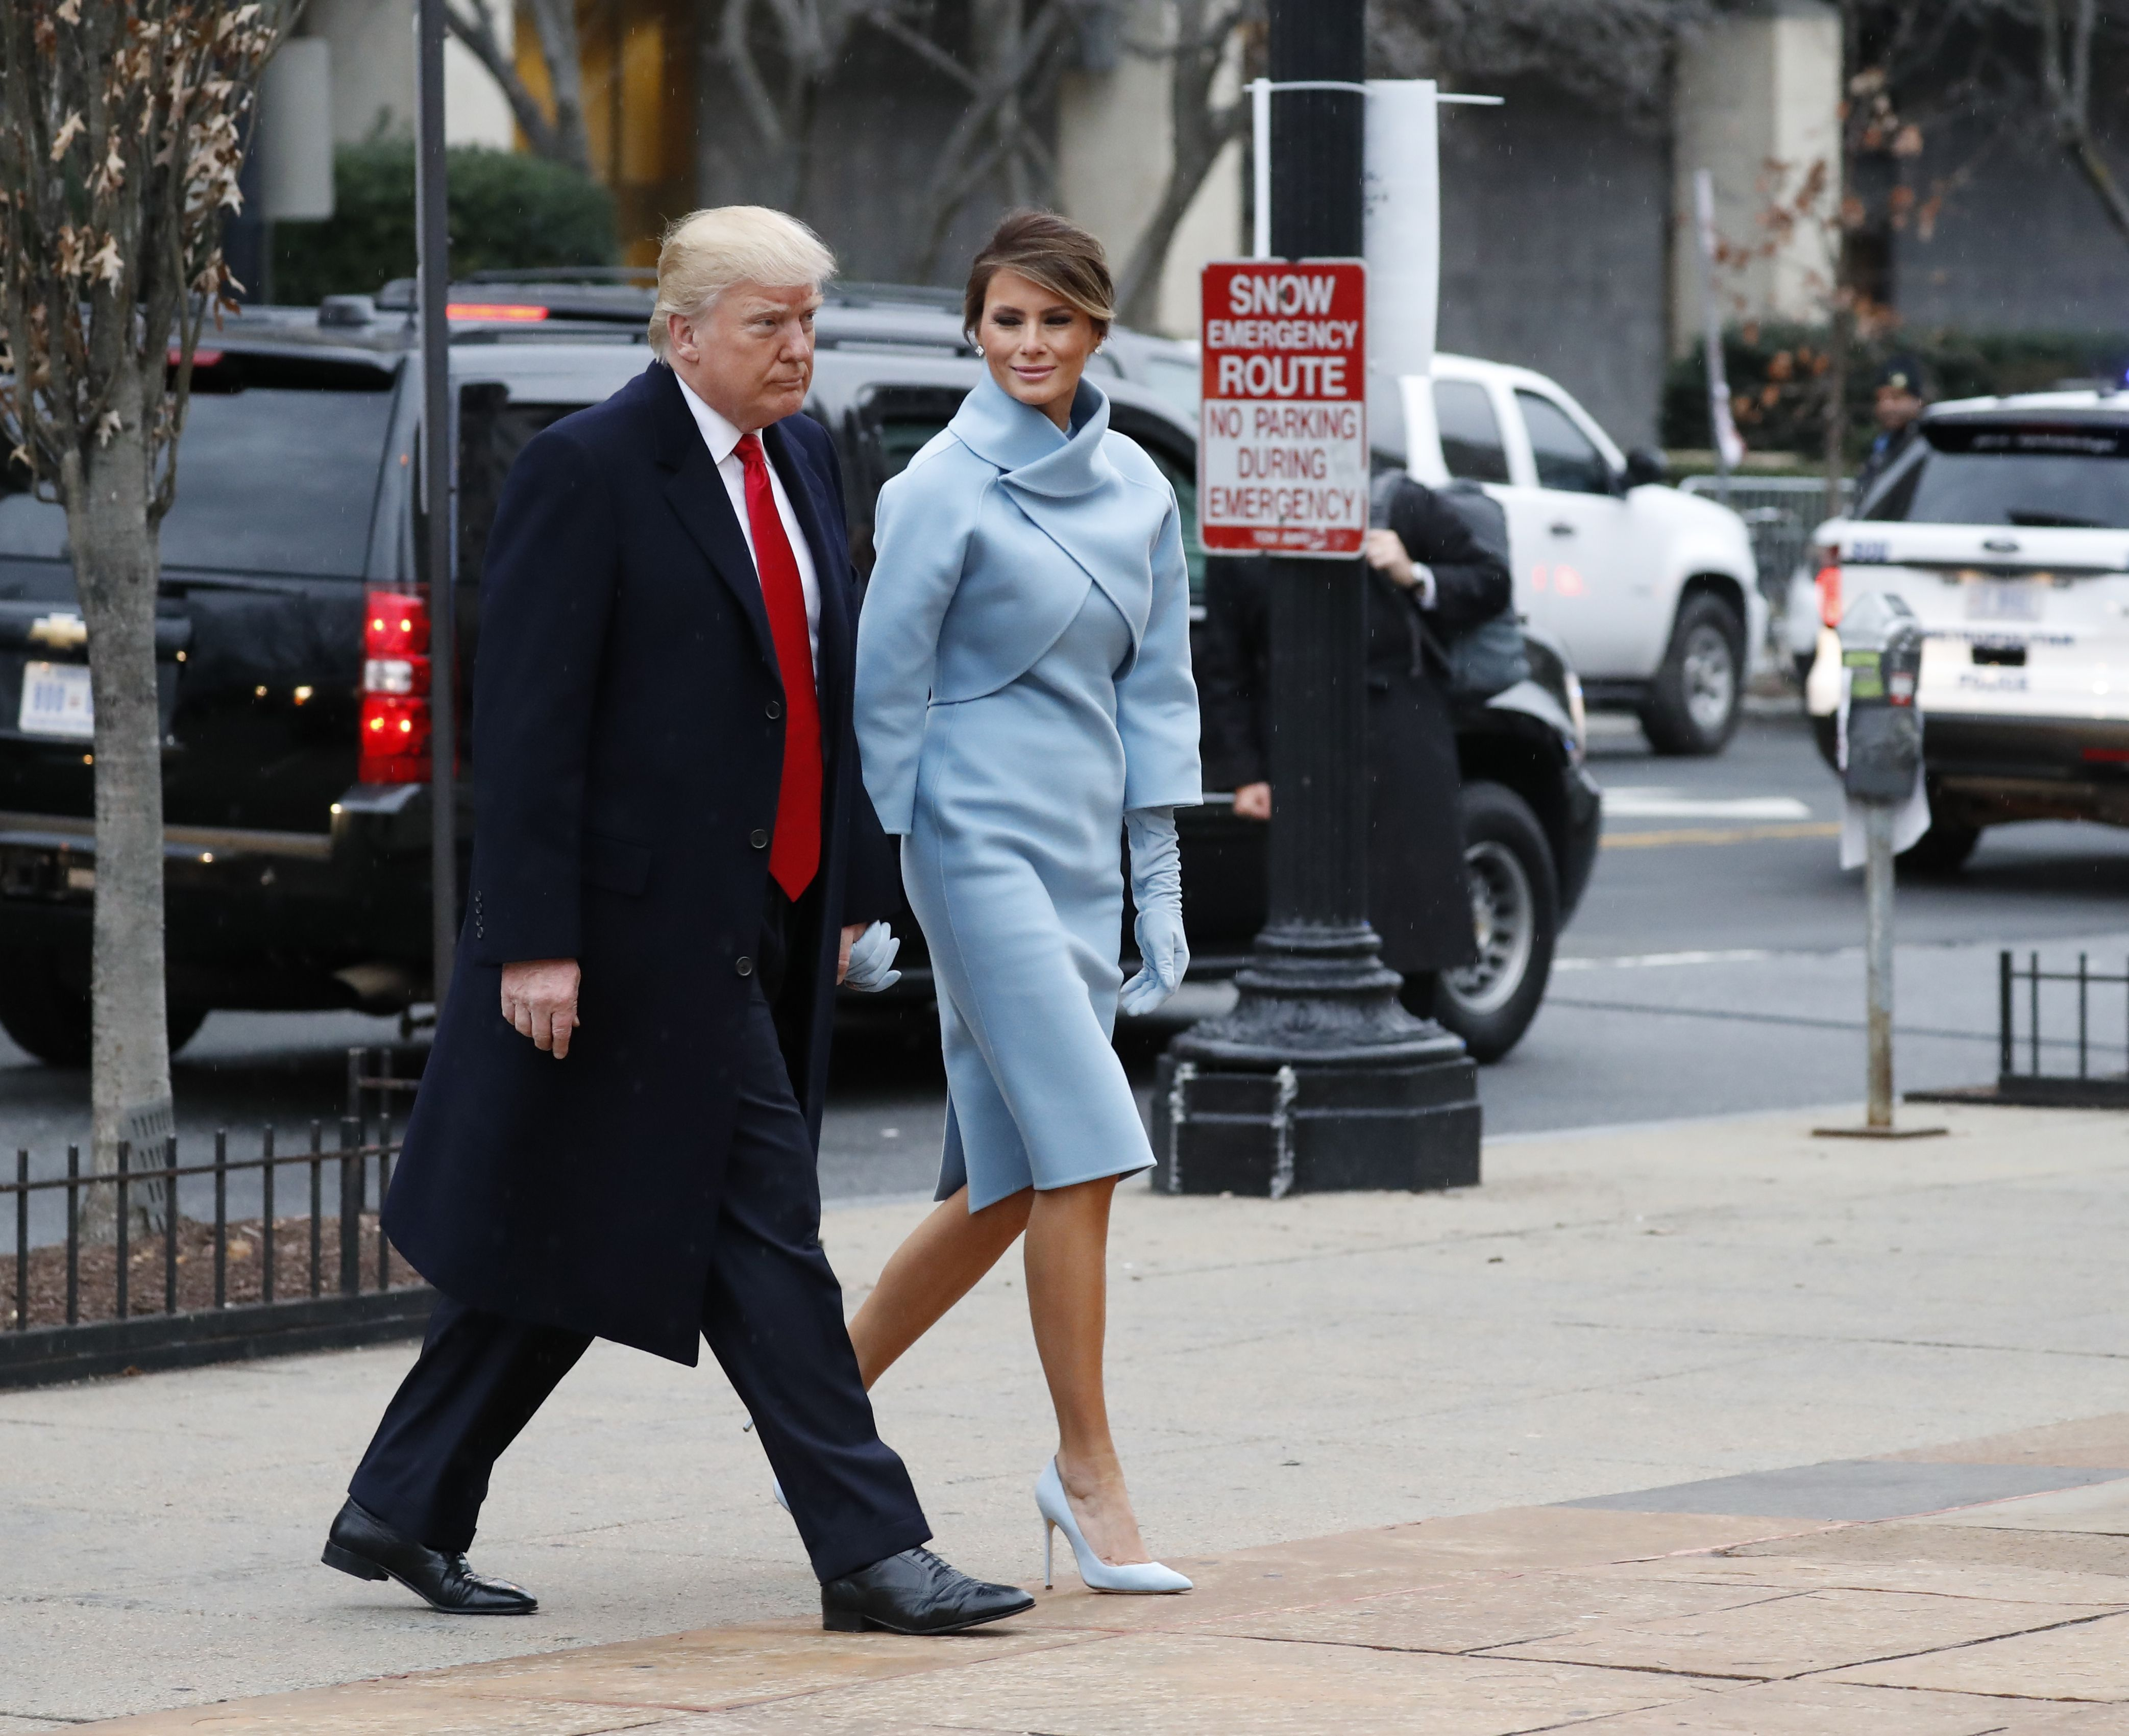 Melania Trump wearing Ralph Lauren for the Inauguration Day